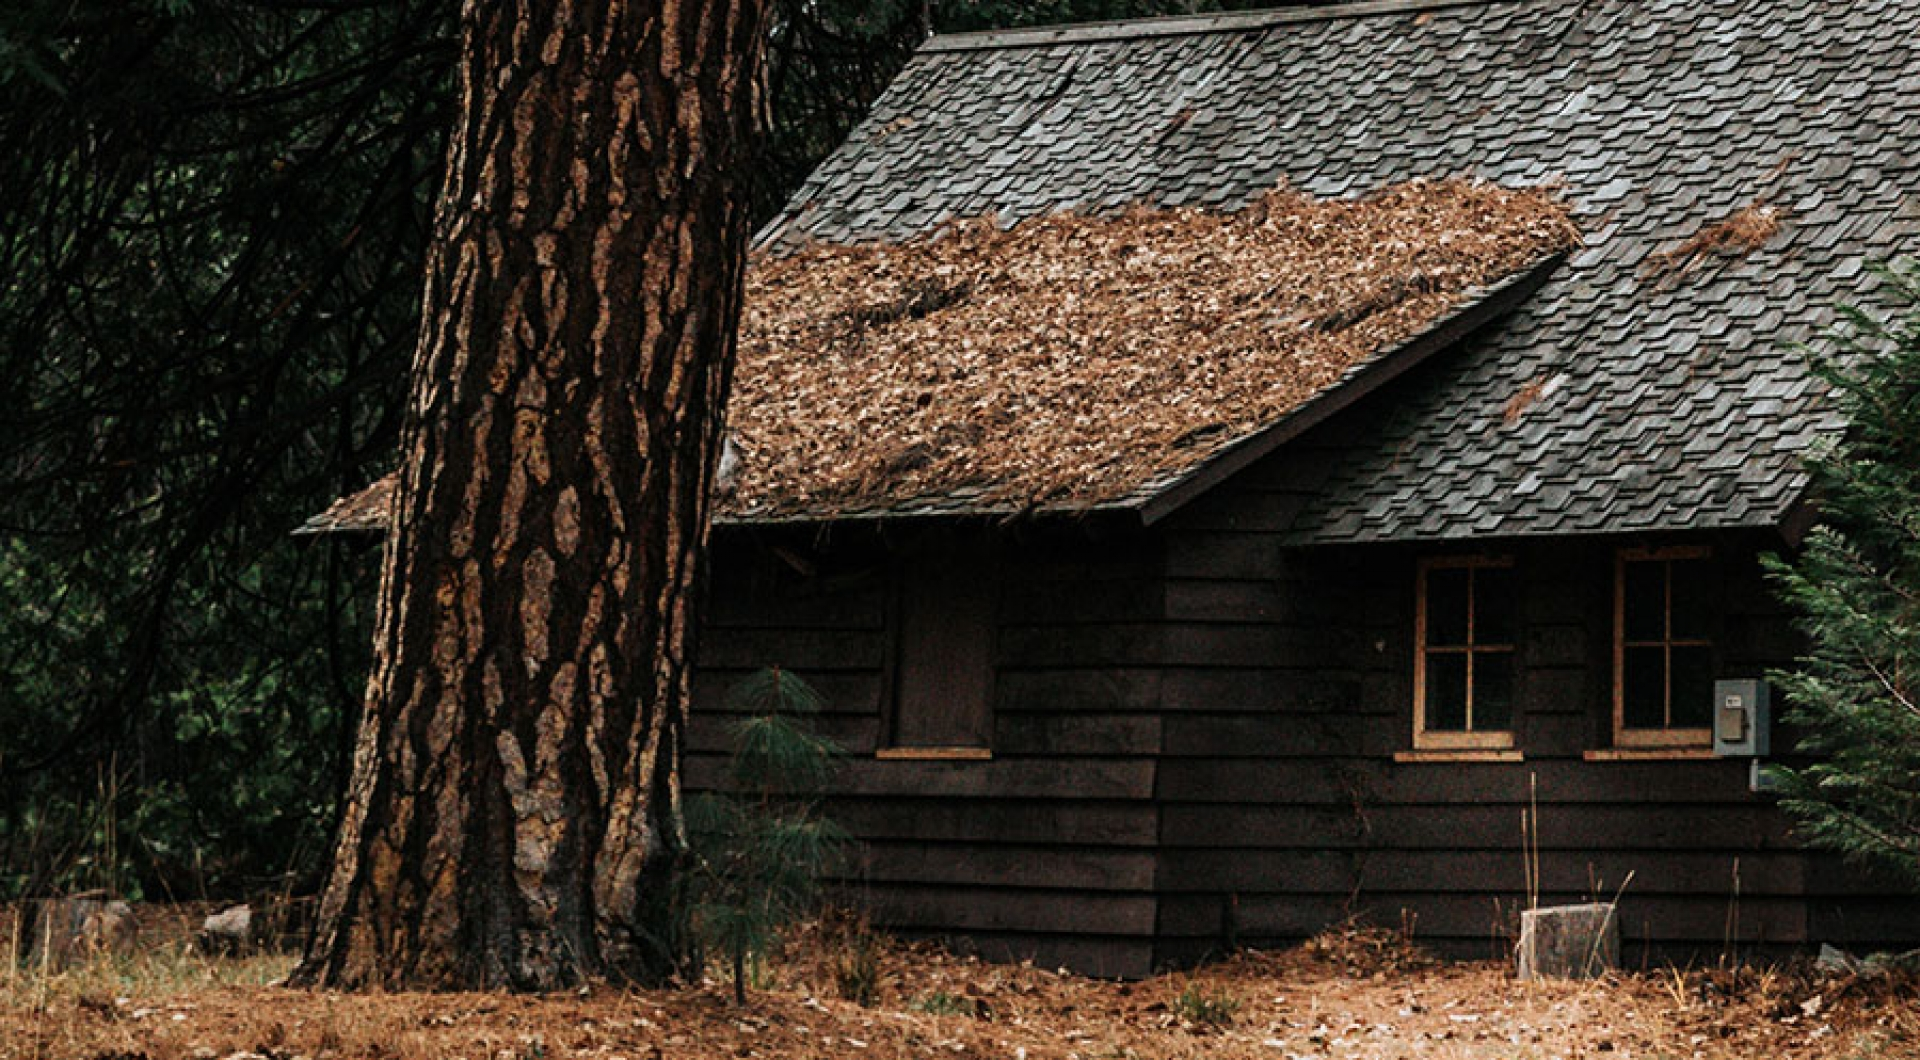 What To Do About Leaves on Your Roof